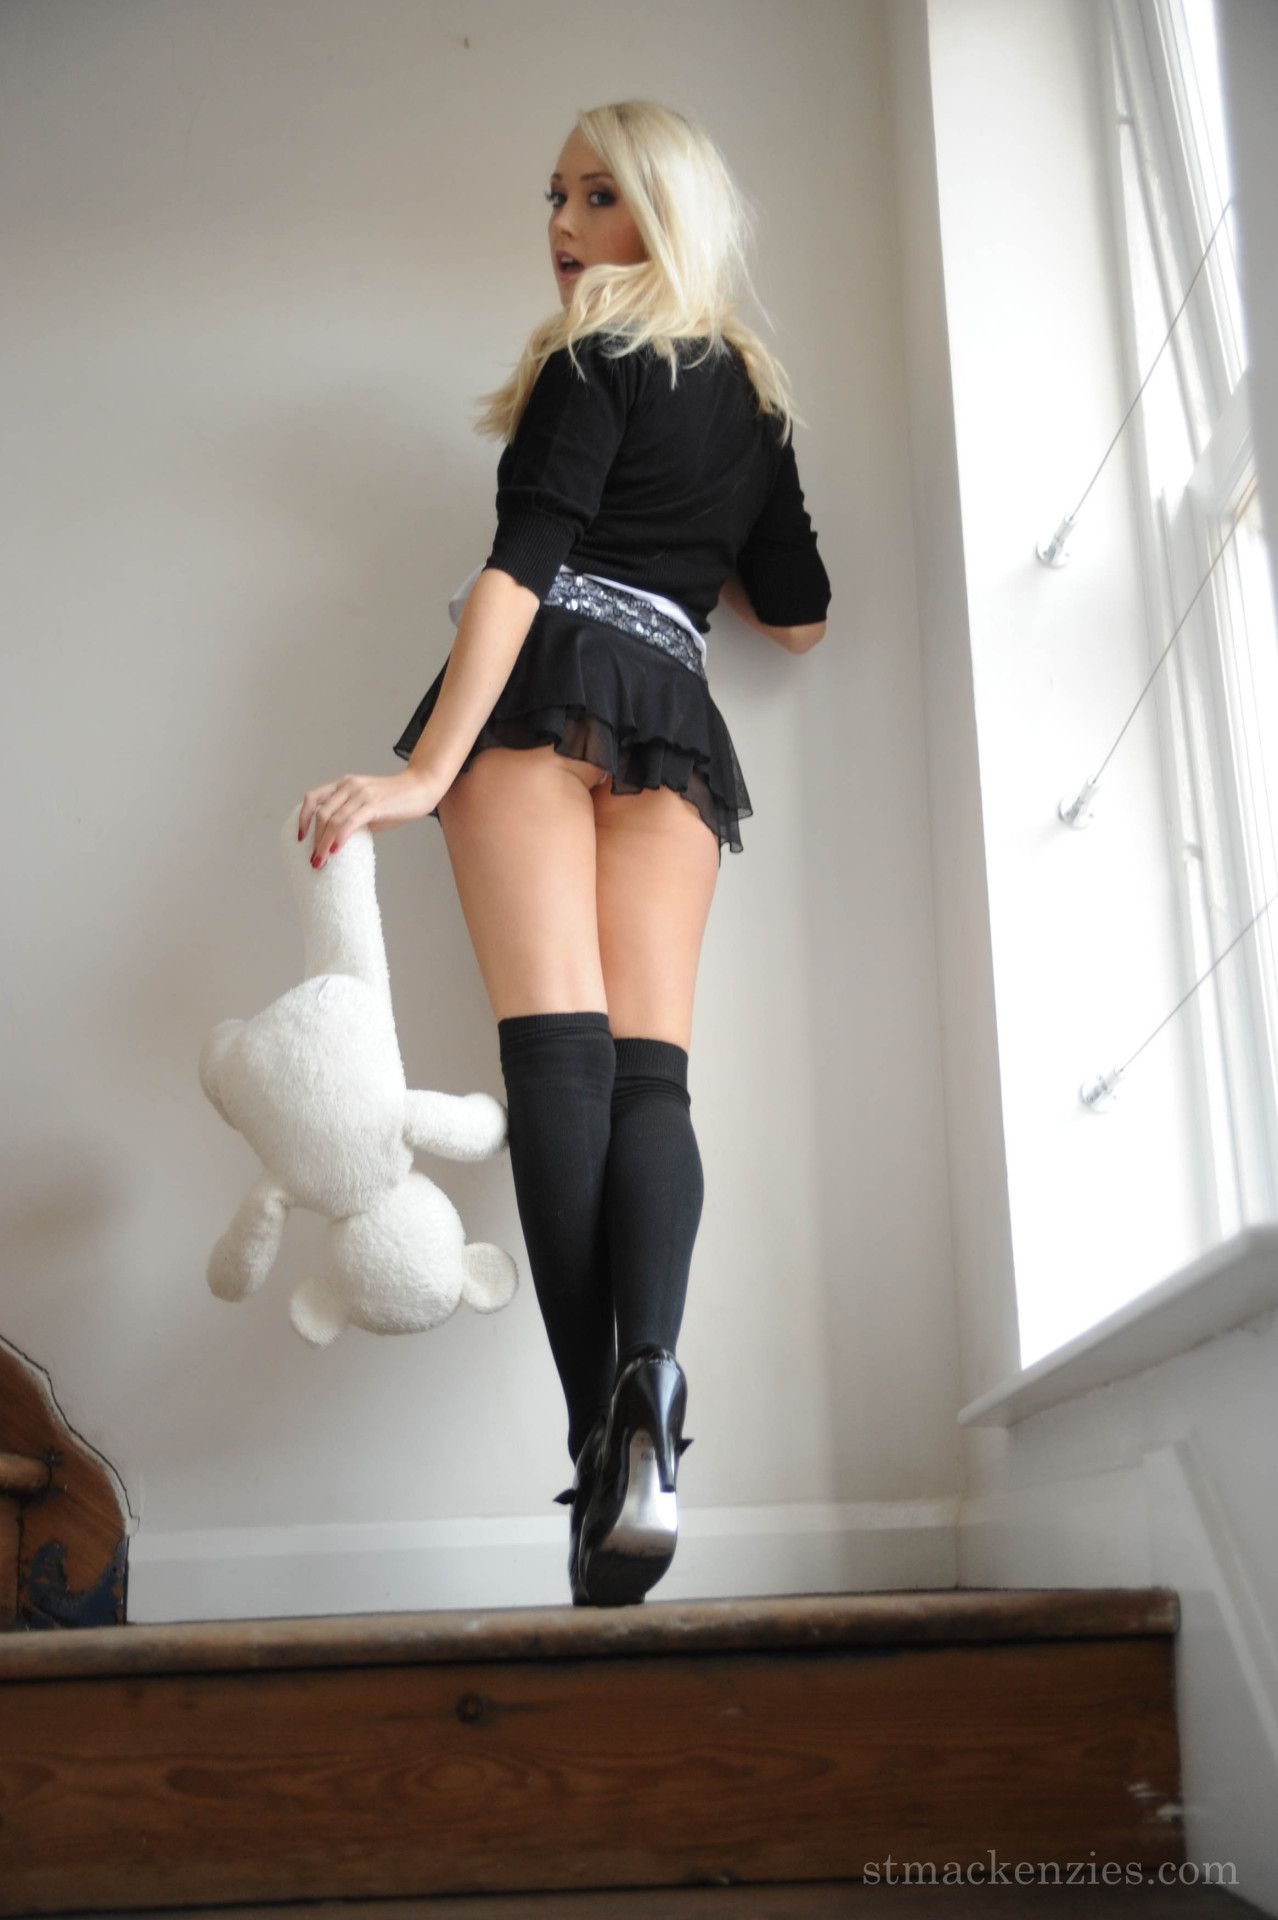 Random Hot Babes - Mini Skirts, High Heels & Legs : Photo ...